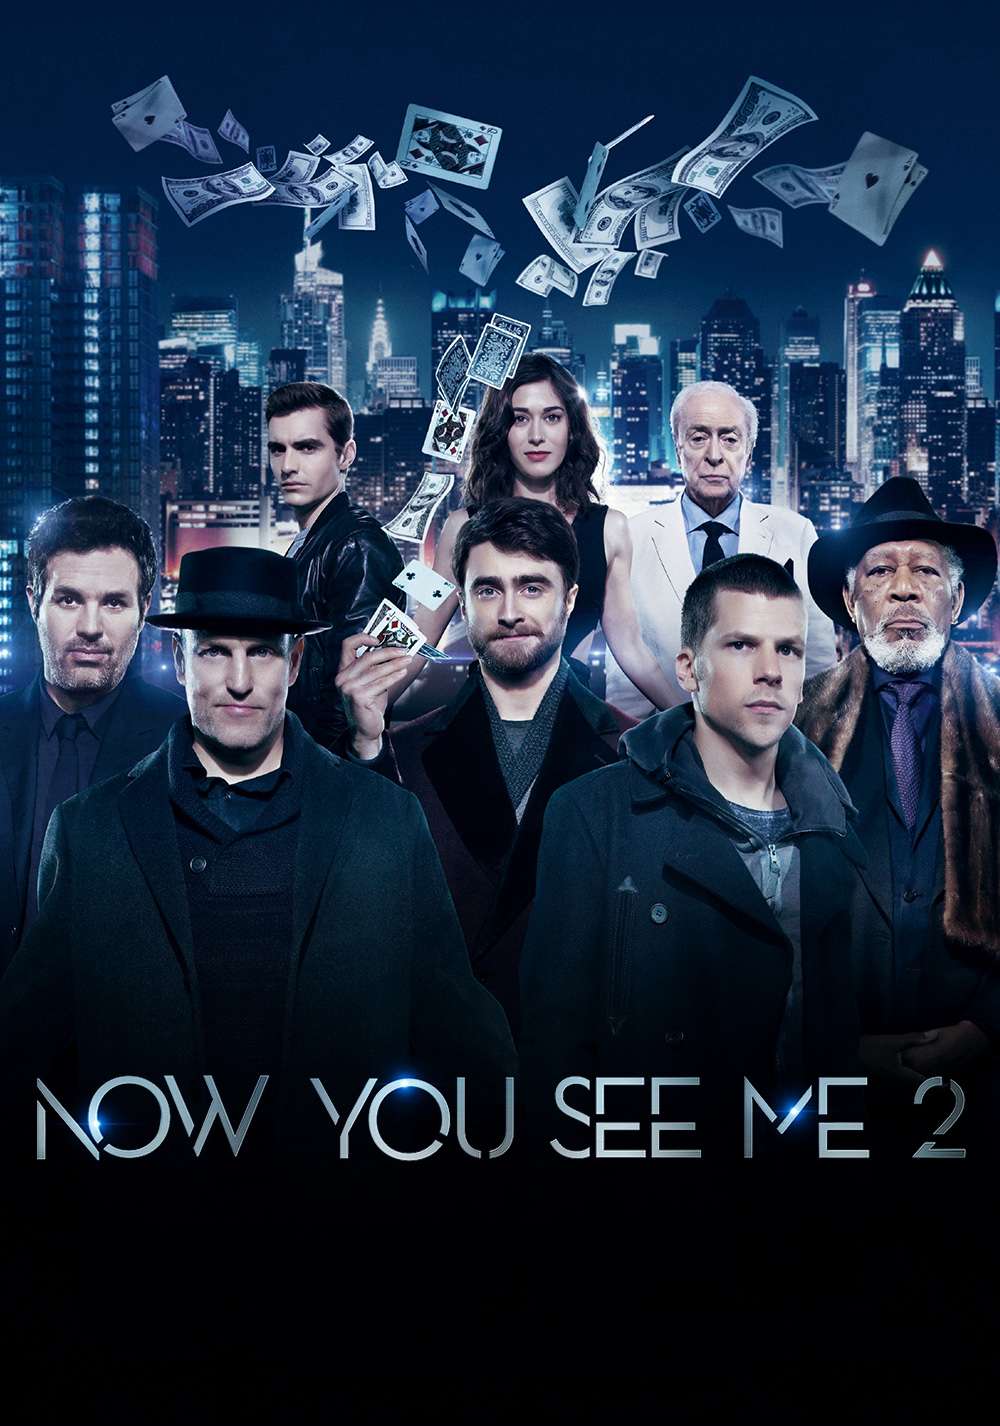 NOW YOU SEE ME 2 (2016) MOVIE TAMIL DUBBED HD